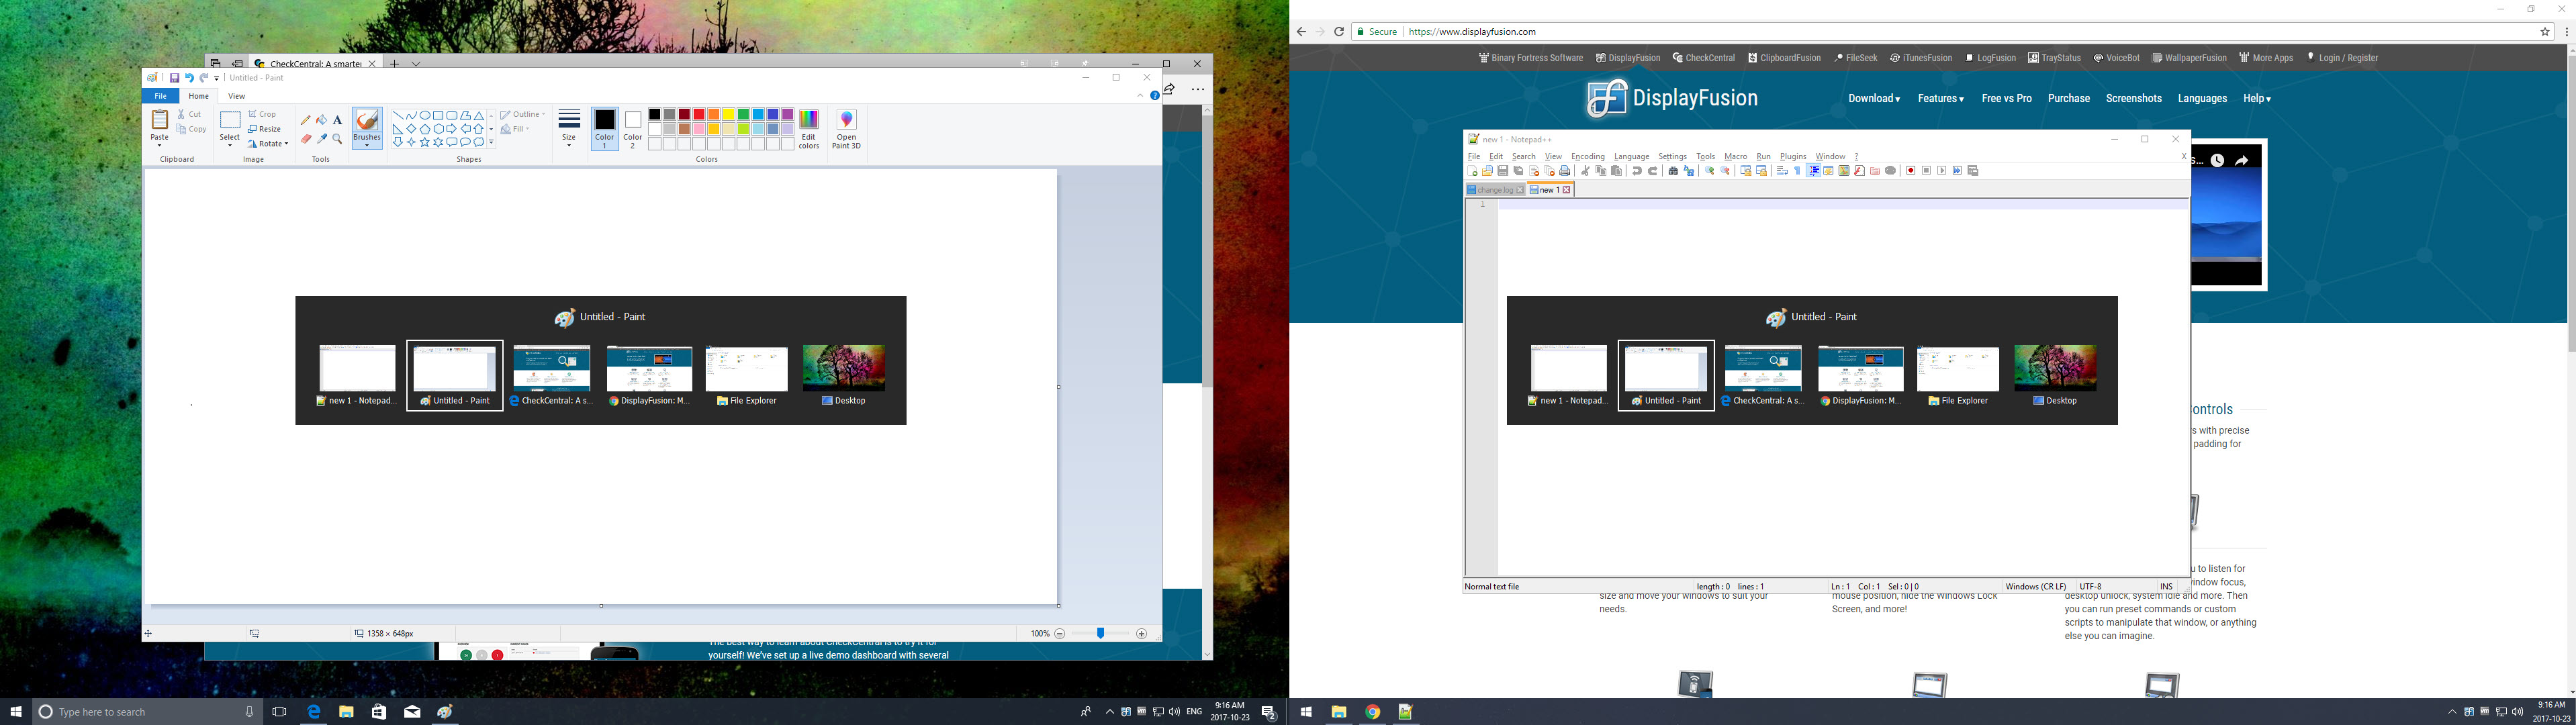 Alt+Tab Handler: Show on All Monitors